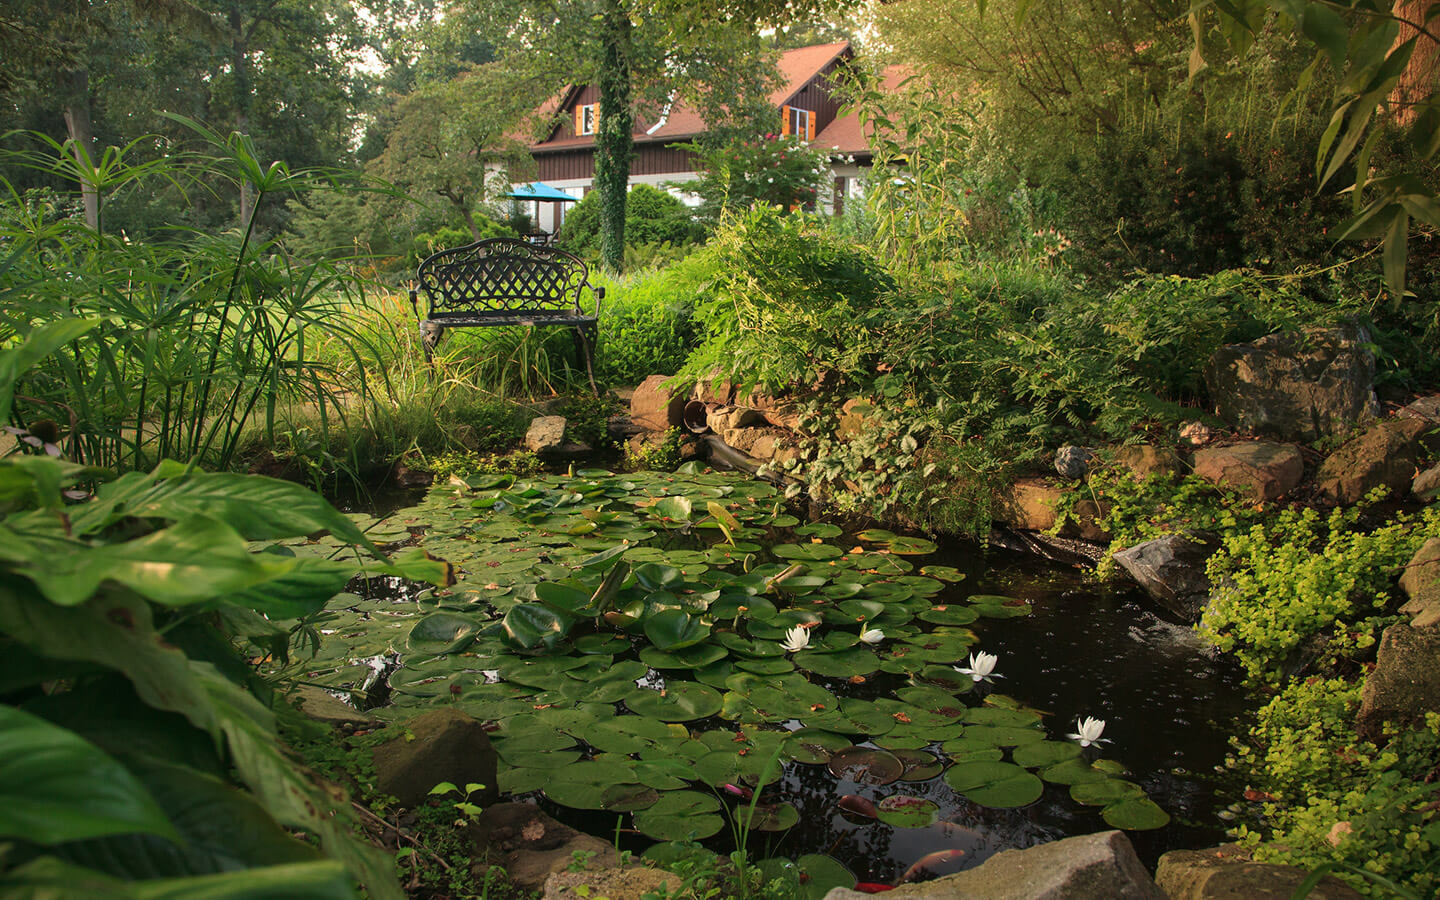 Pond in the garden at our Lancaster County B&B